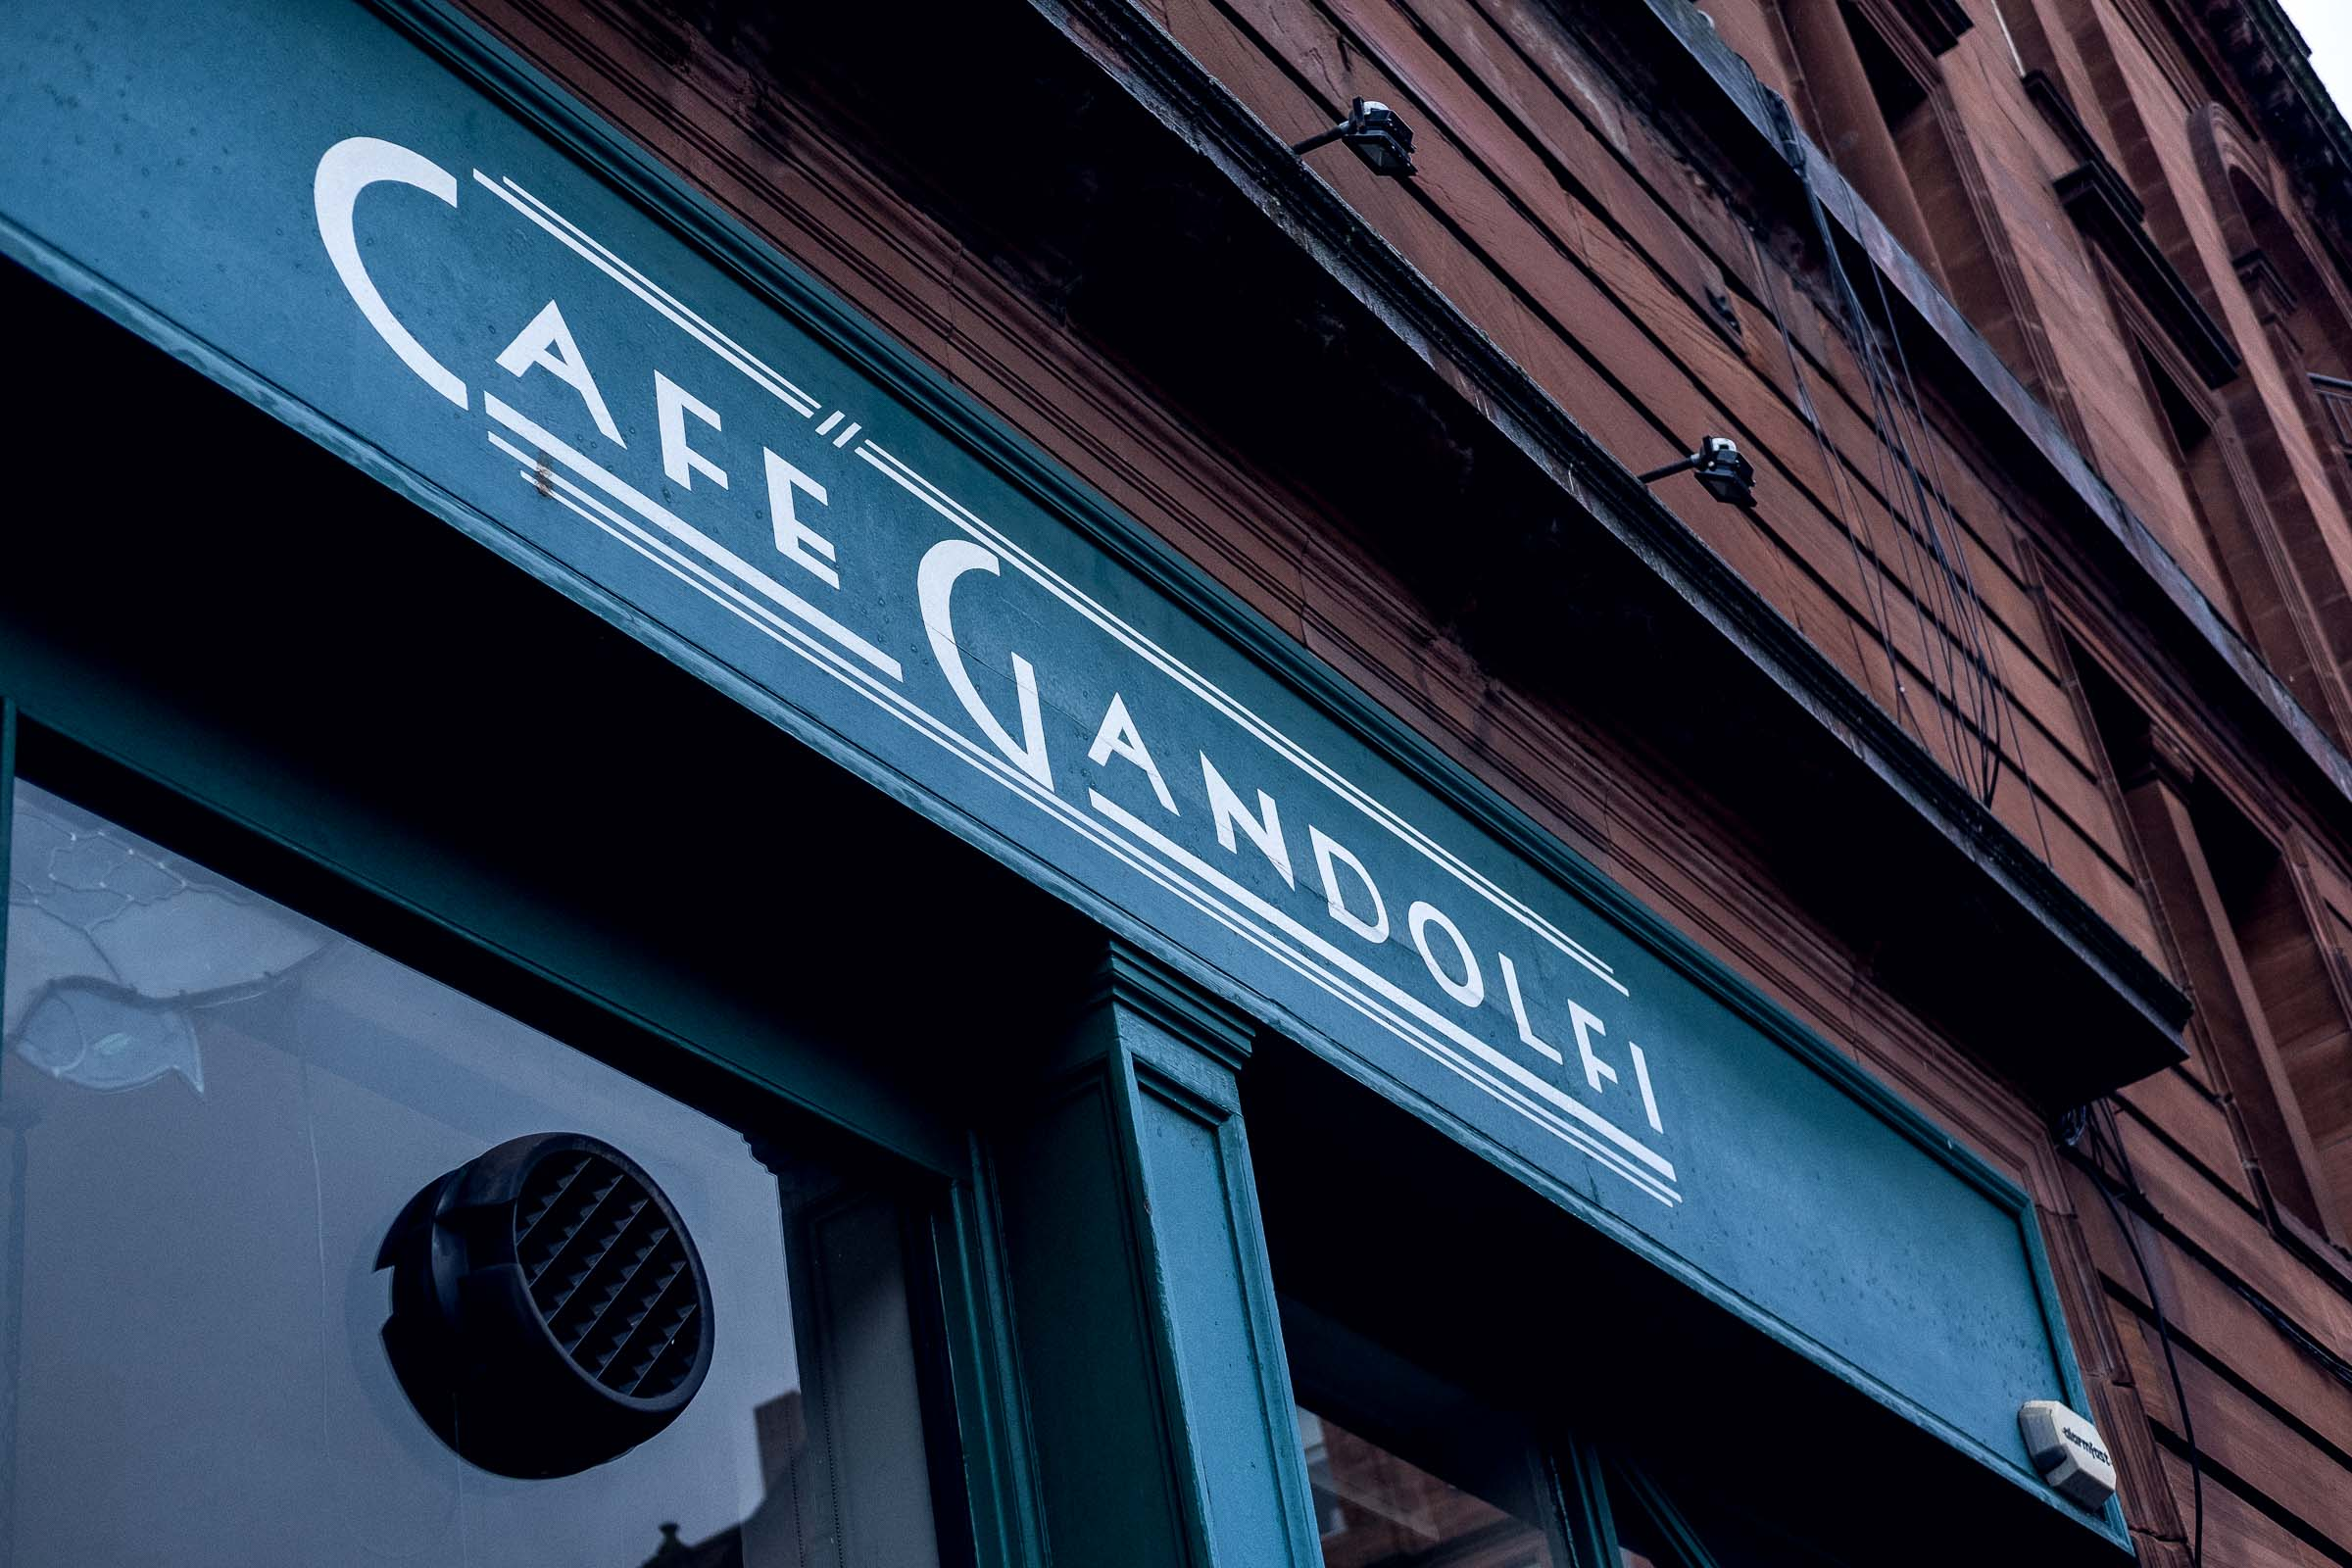 City Guide: Off Duty in Glasgow - where to eat - cafe gandolfi